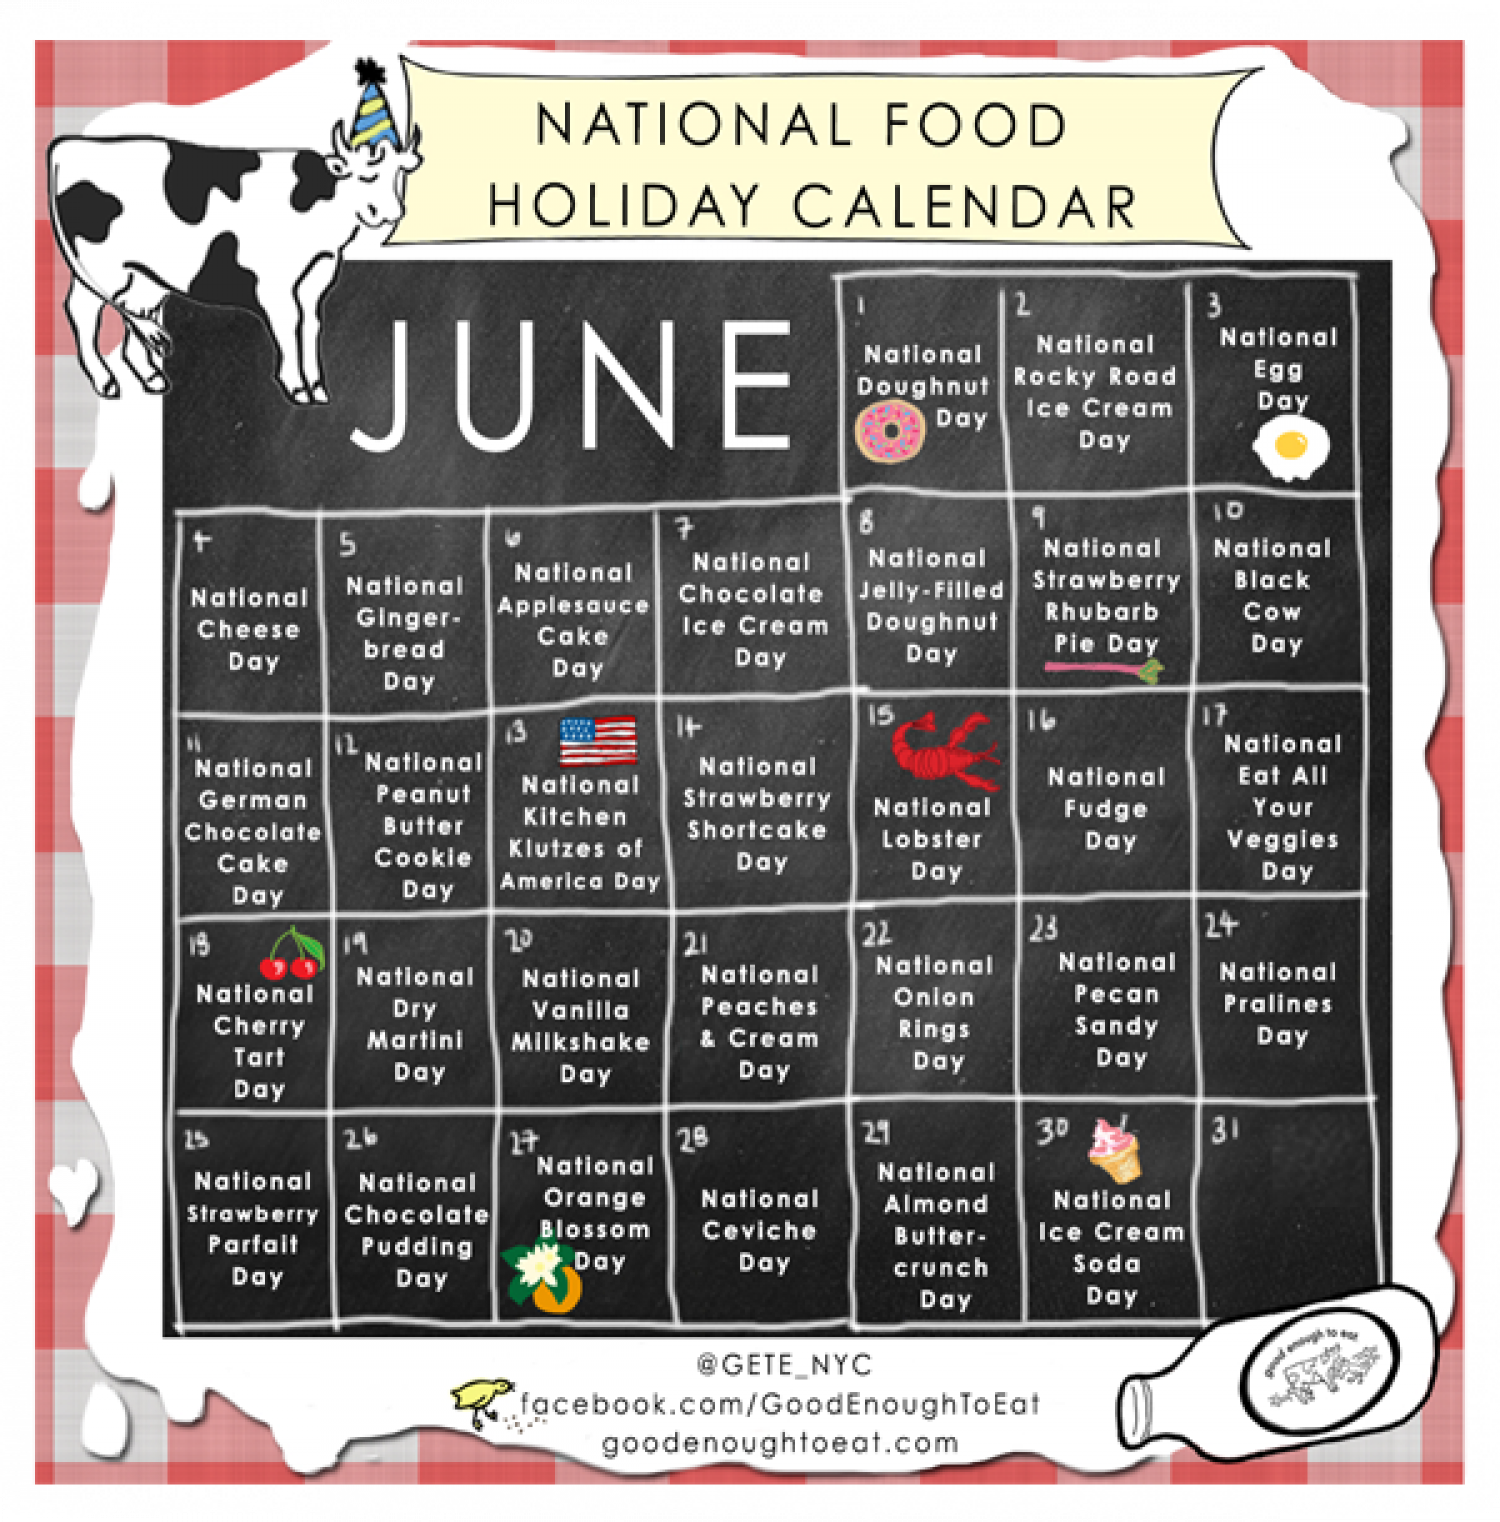 NATIONAL FOOD HOLIDAY CALENDAR - JUNE 2013 Infographic